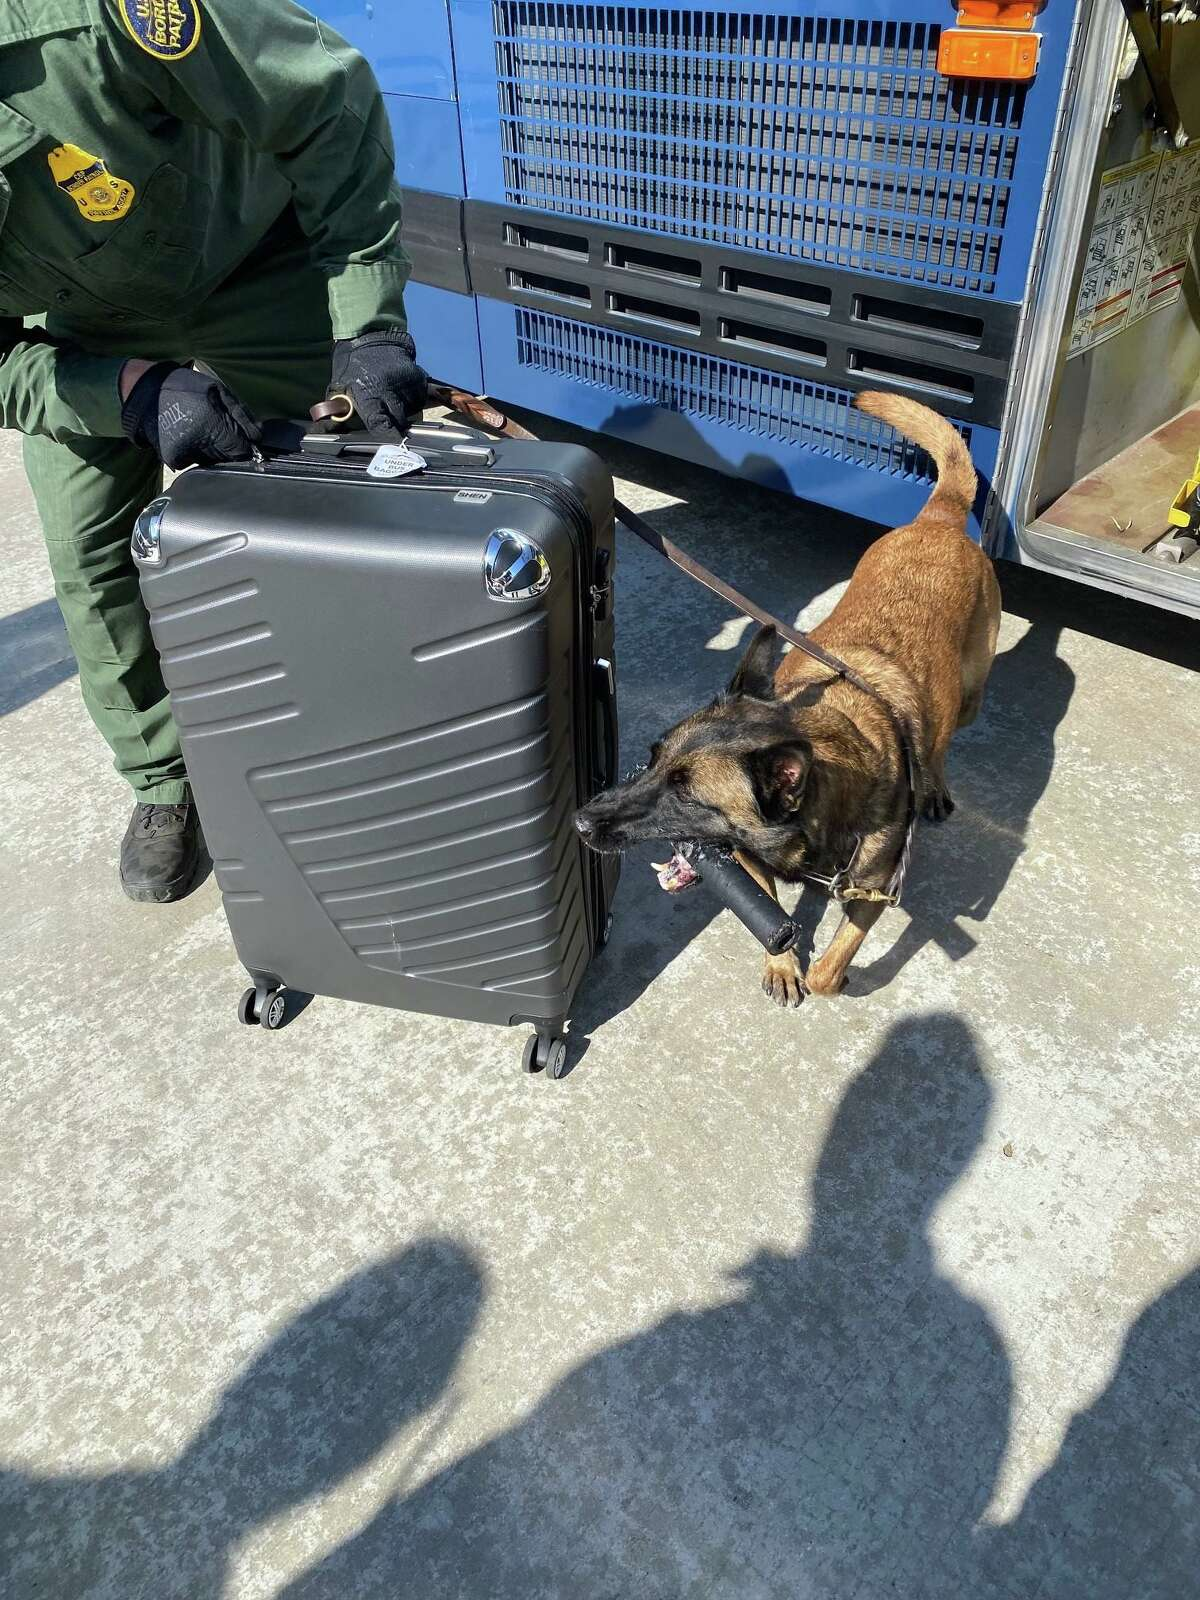 A K-9 unit alerts to a suitcase where U.S. Border Patrol agents said they found 20 pounds of marijuana. The contraband had an estimated street value of $16,500.